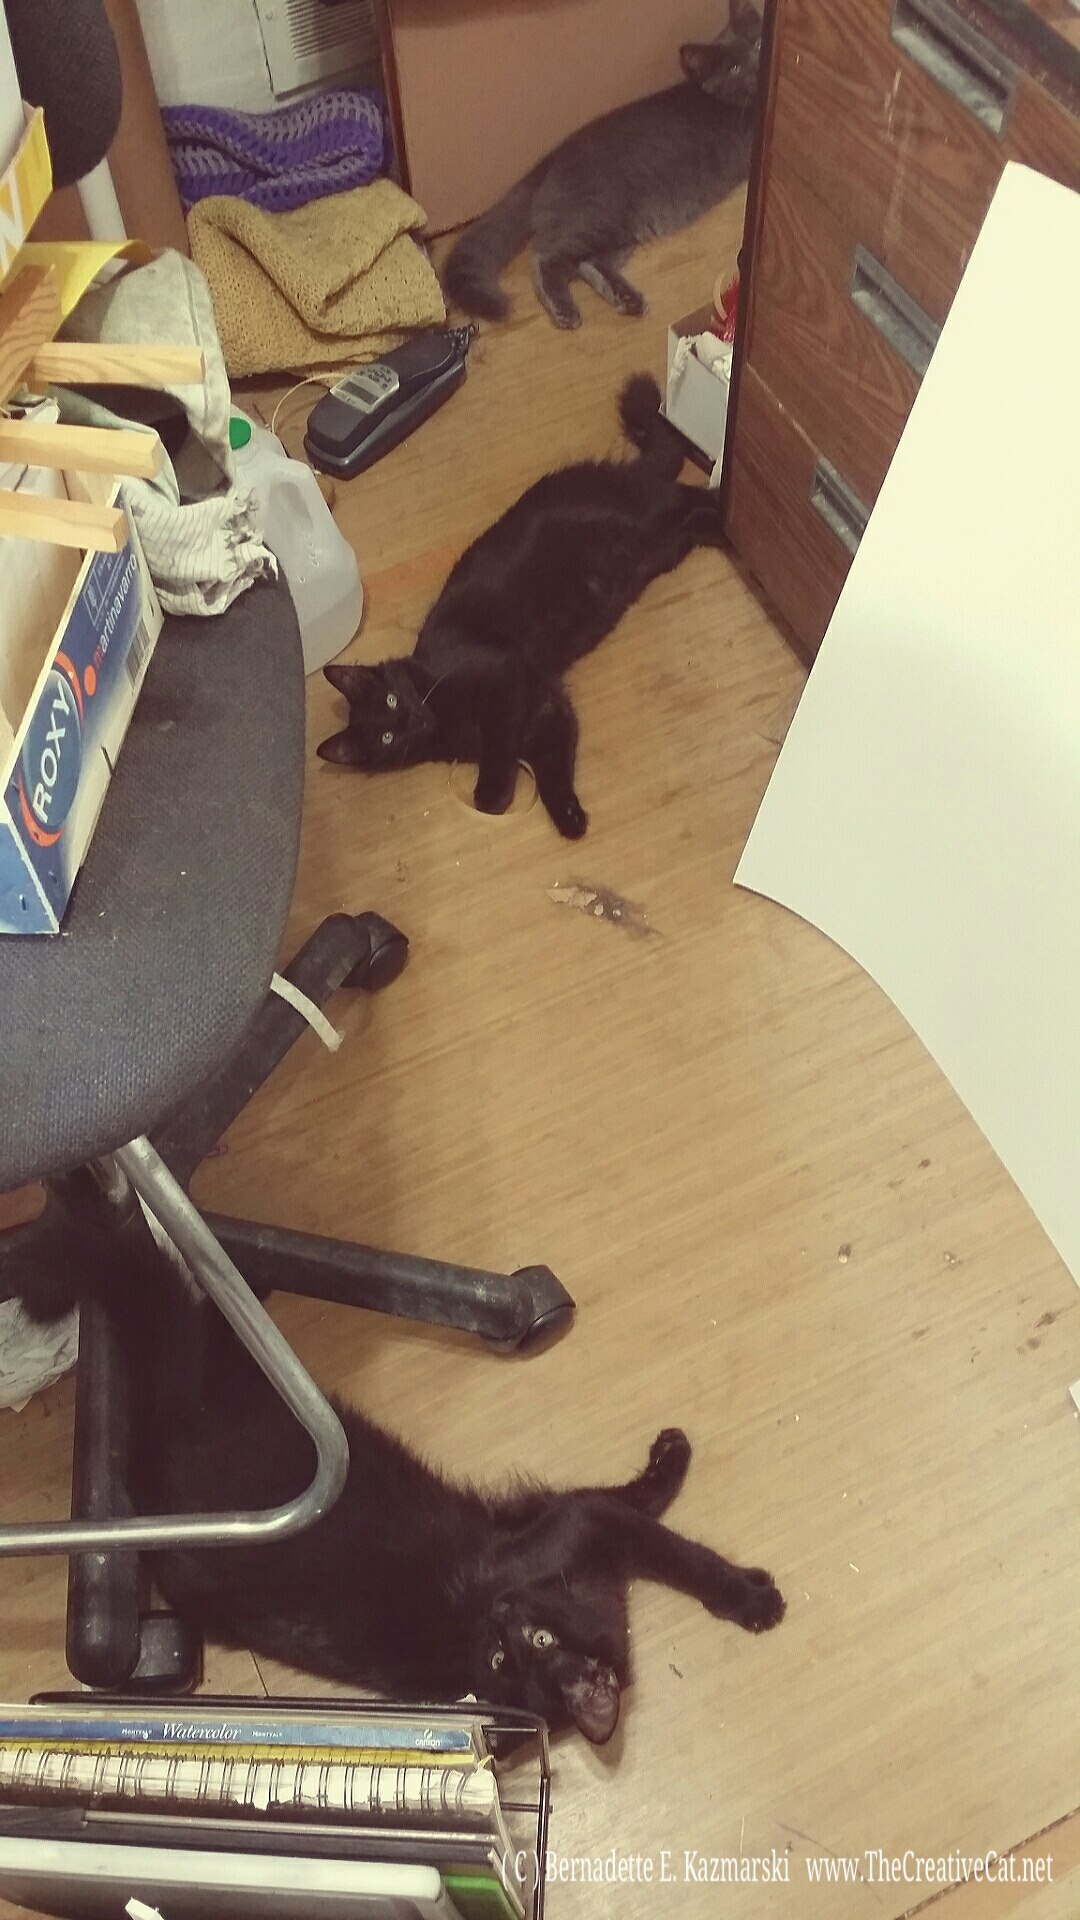 My studio supervisors, learning early.